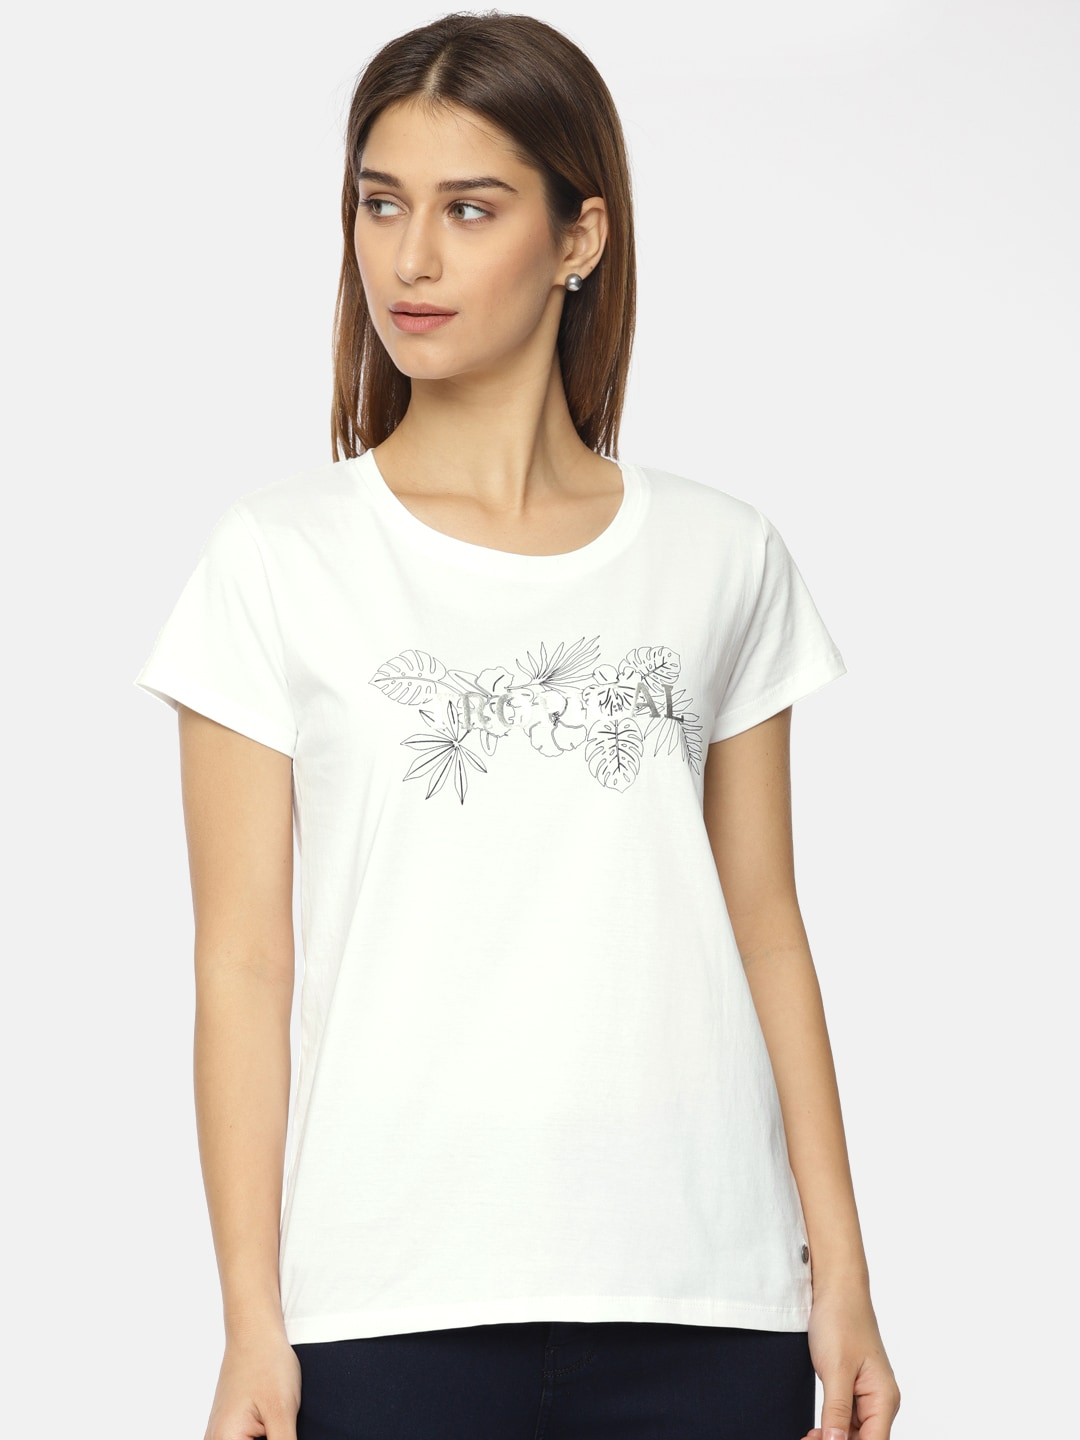 4d51eb0b8a1 Pepe Jeans - Buy Pepe Jeans Clothing Online in India